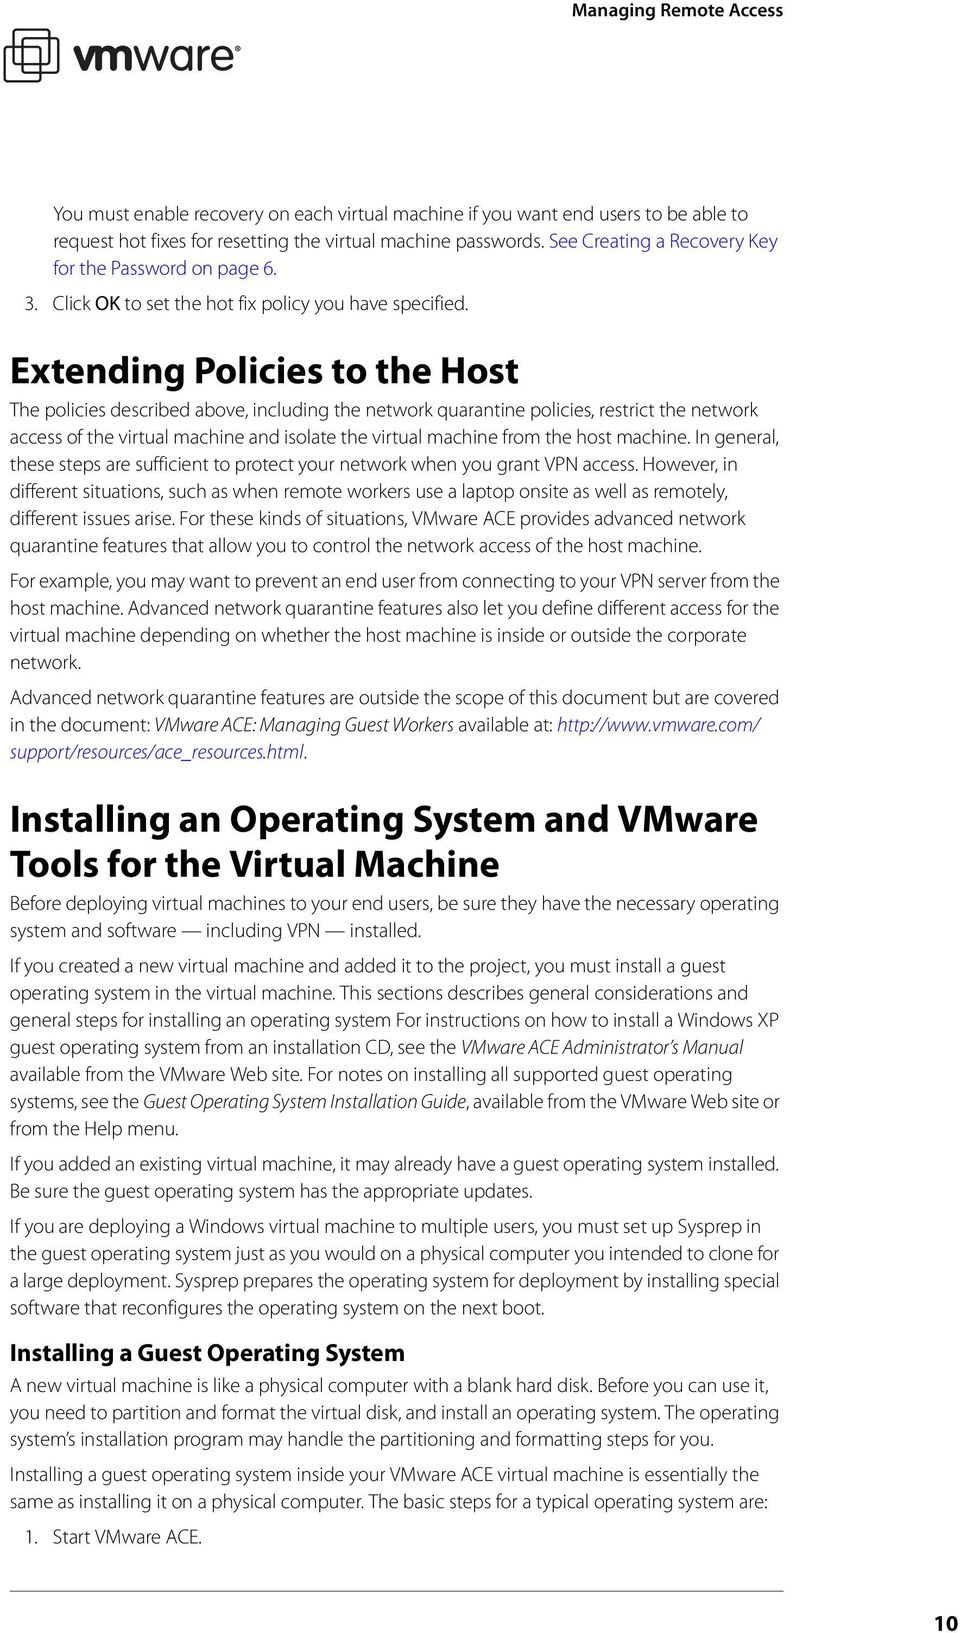 Extending Policies to the Host The policies described above, including the network quarantine policies, restrict the network access of the virtual machine and isolate the virtual machine from the